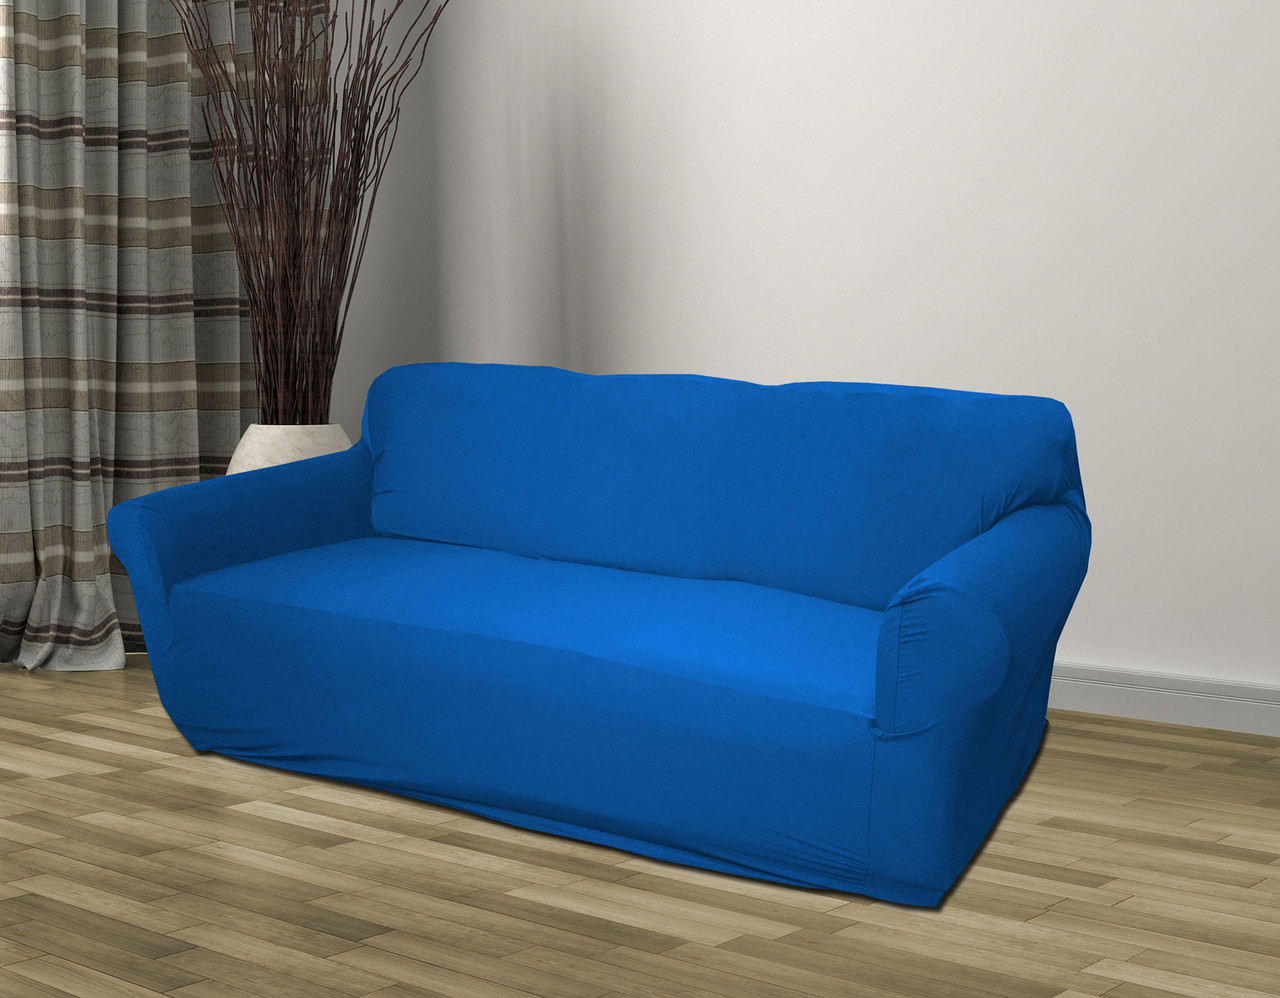 Terrific Kashi Home Stretch Jersey Slipcover Blue Sofa Loveseat Chair Machost Co Dining Chair Design Ideas Machostcouk